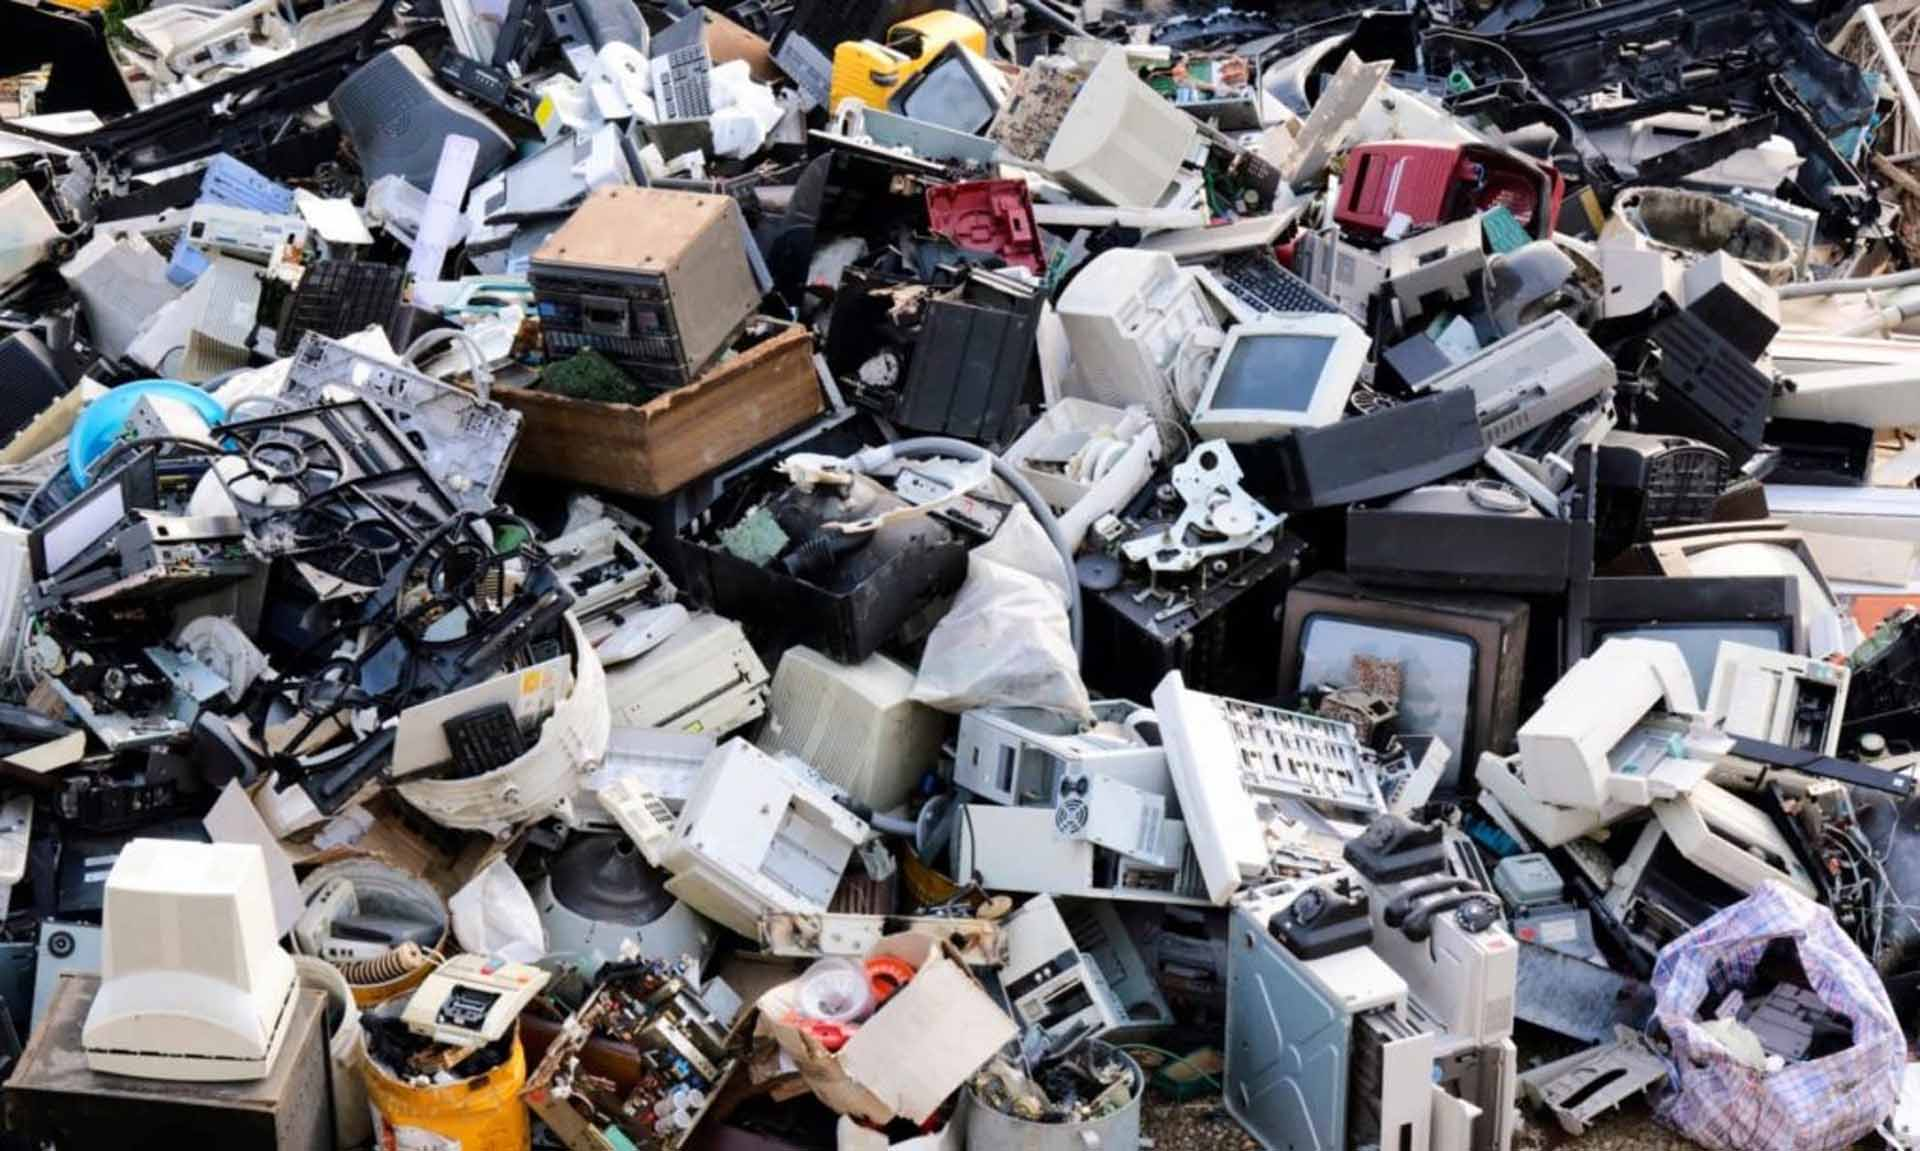 Planned Obsolescence: Why Are Some Products Intentionally Designed With Shorter Lifespans?